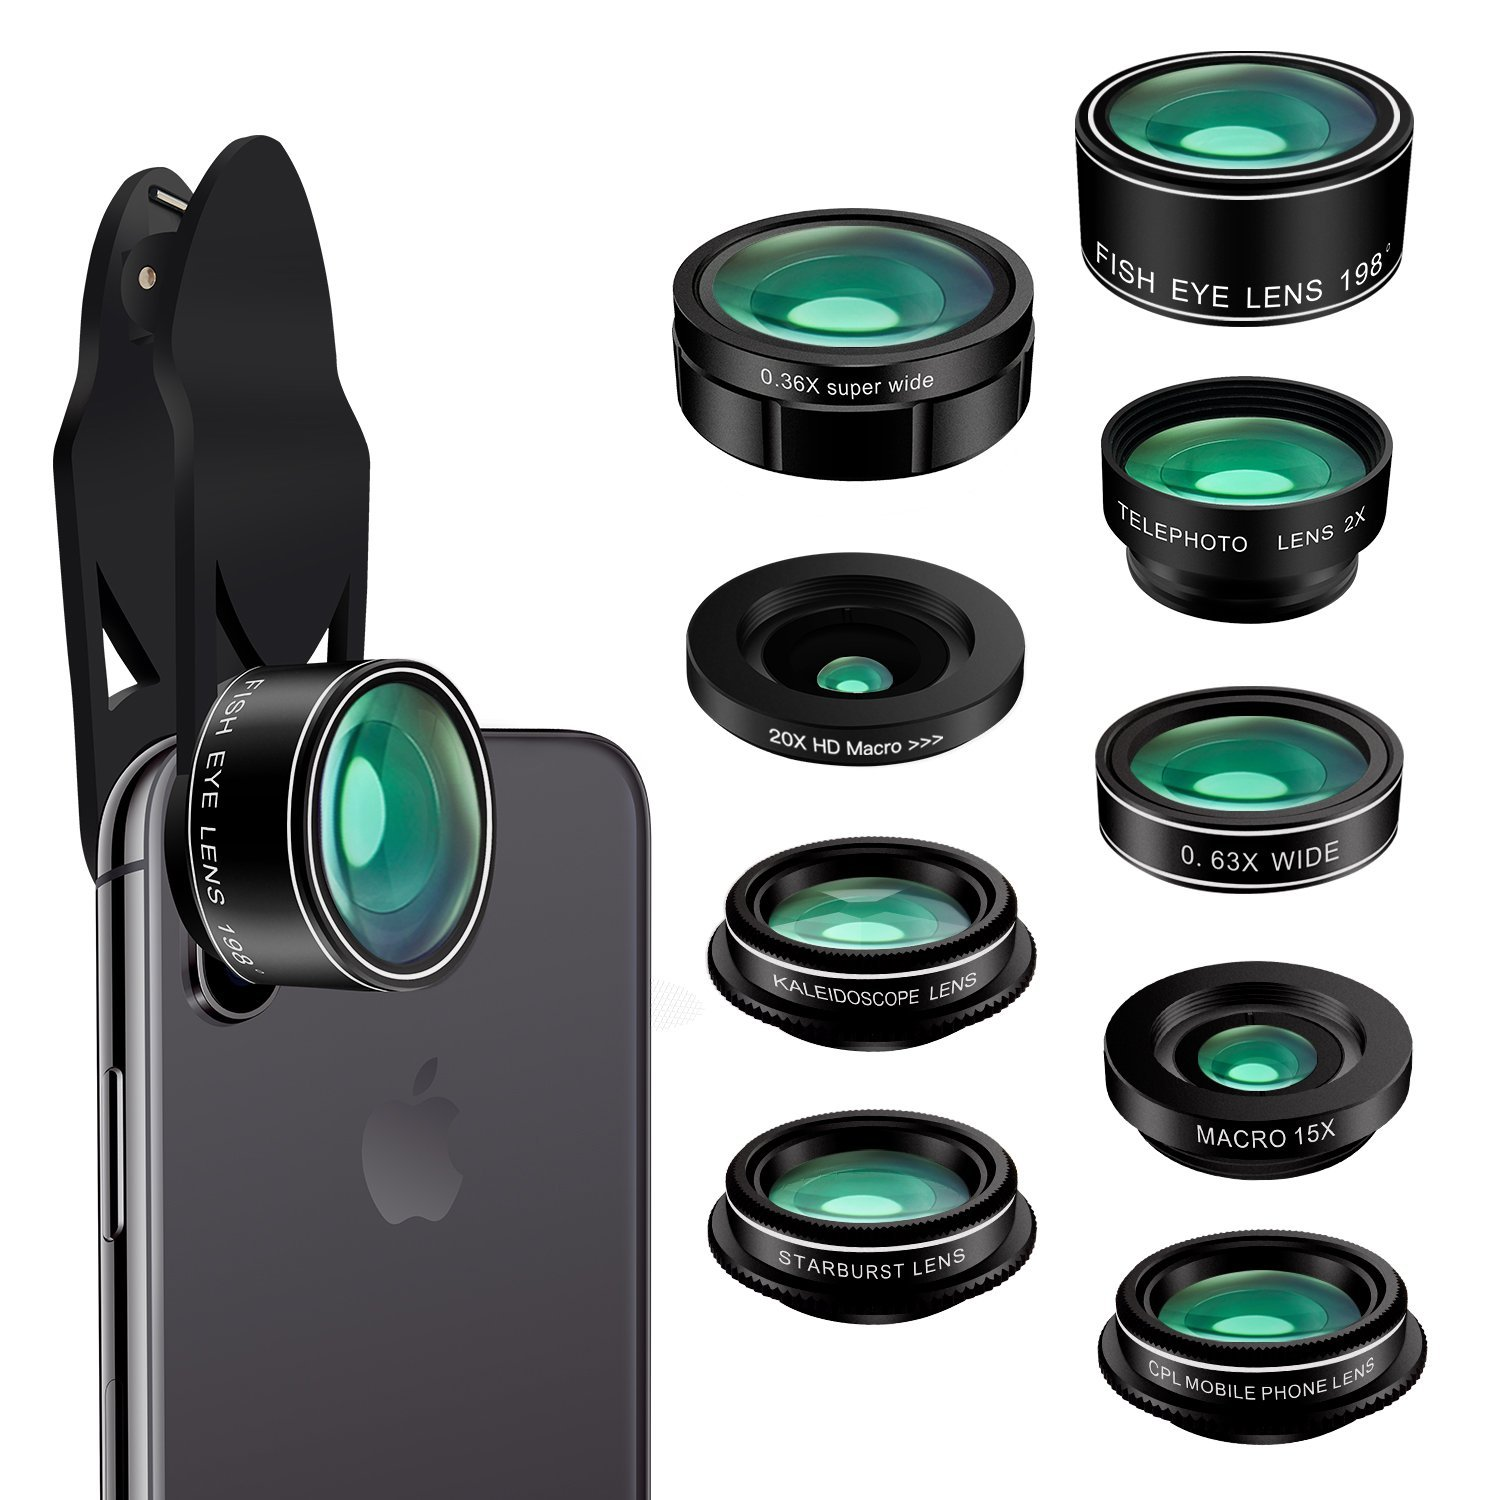 Amazon best selling aukey mobile phone camera accessories 3 in 1 fisheye wide angle macro lens kit for android/ iphone camera